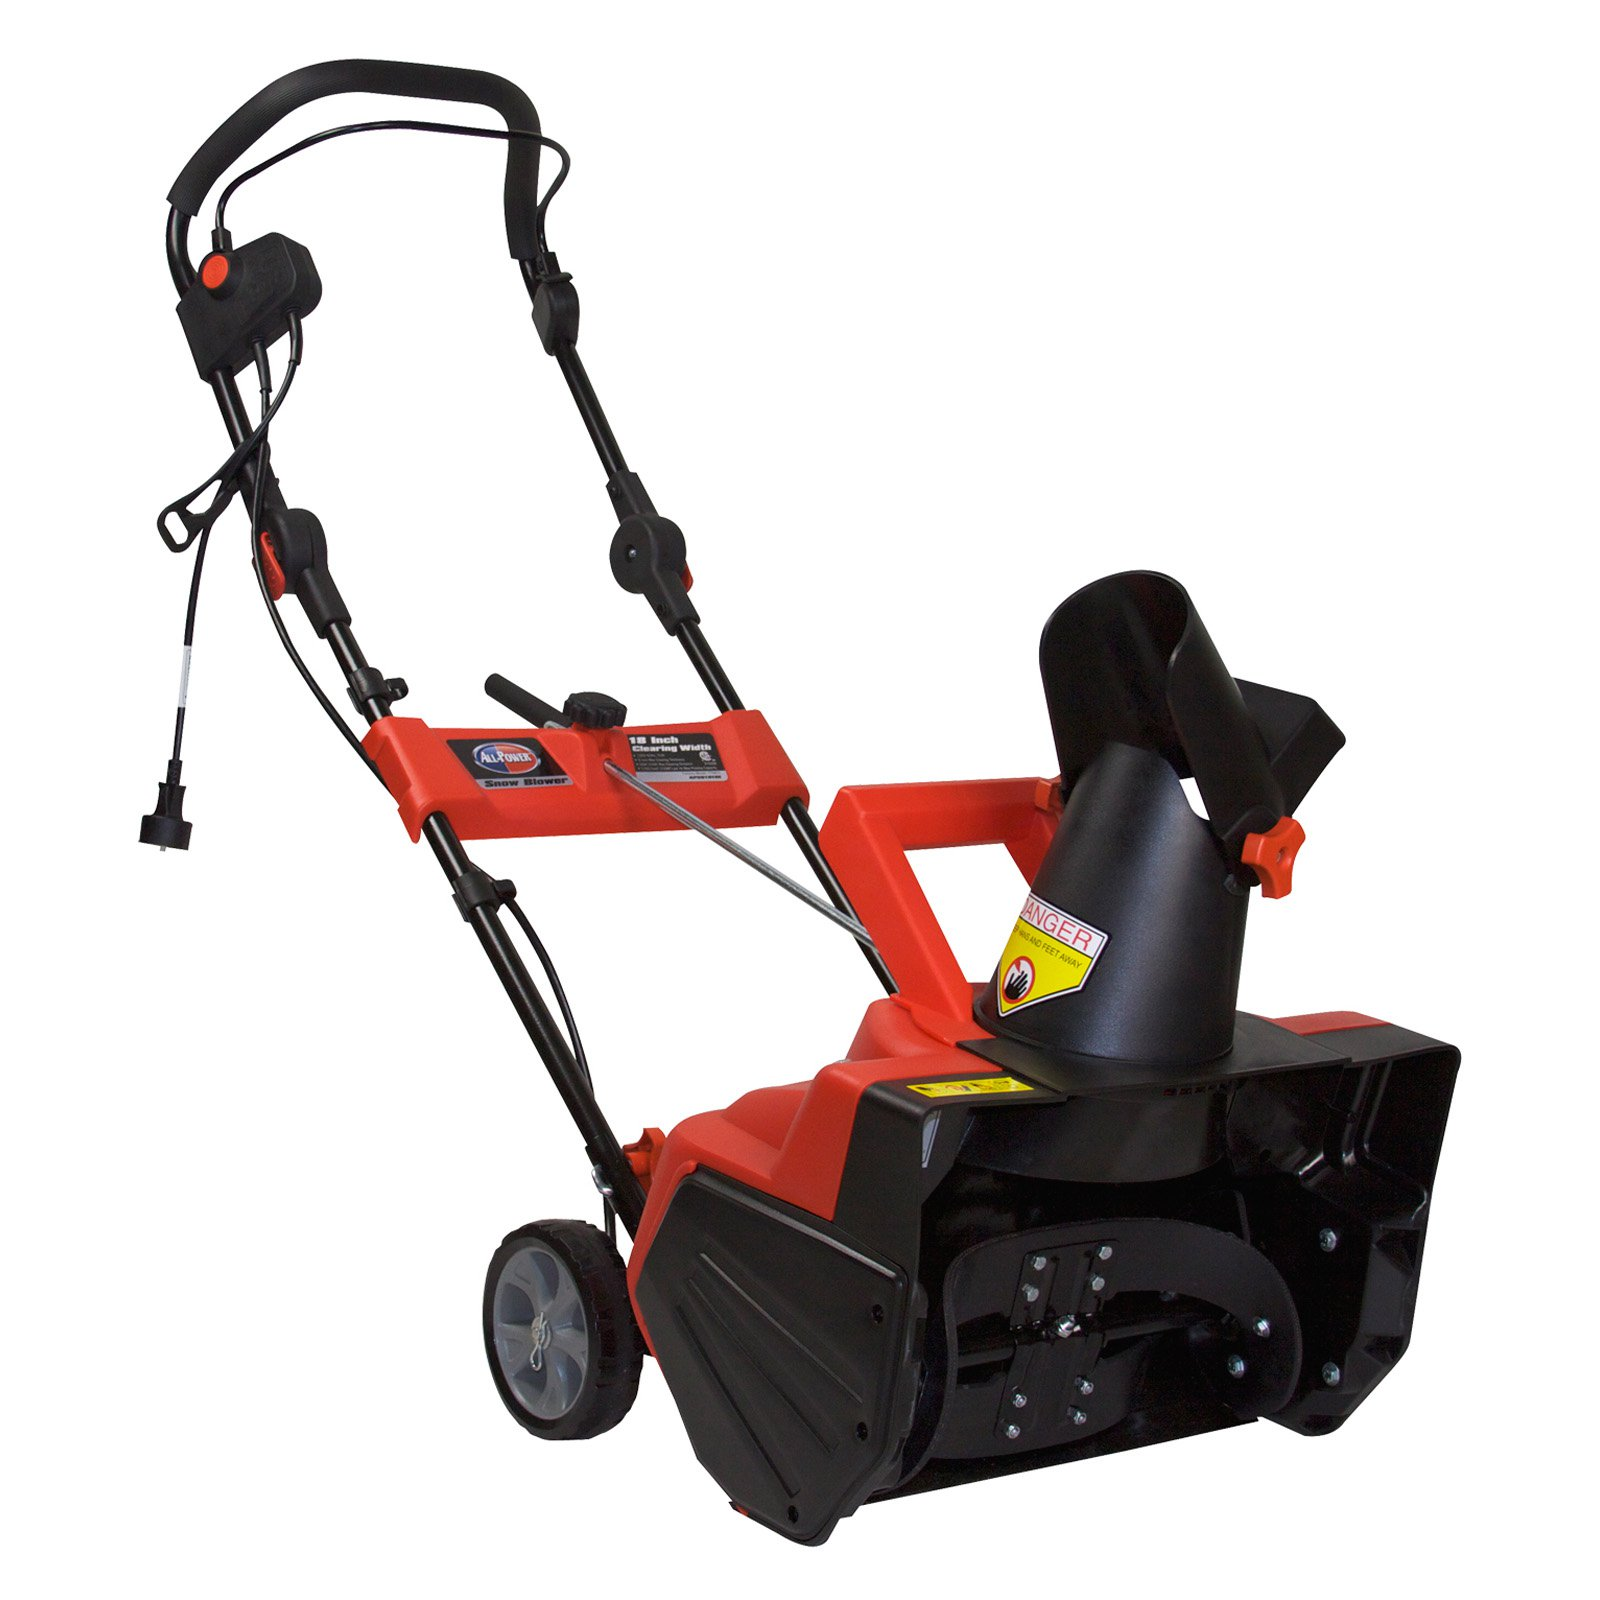 All Power 18 Inch 13.5 AMP Electric Snow Blower